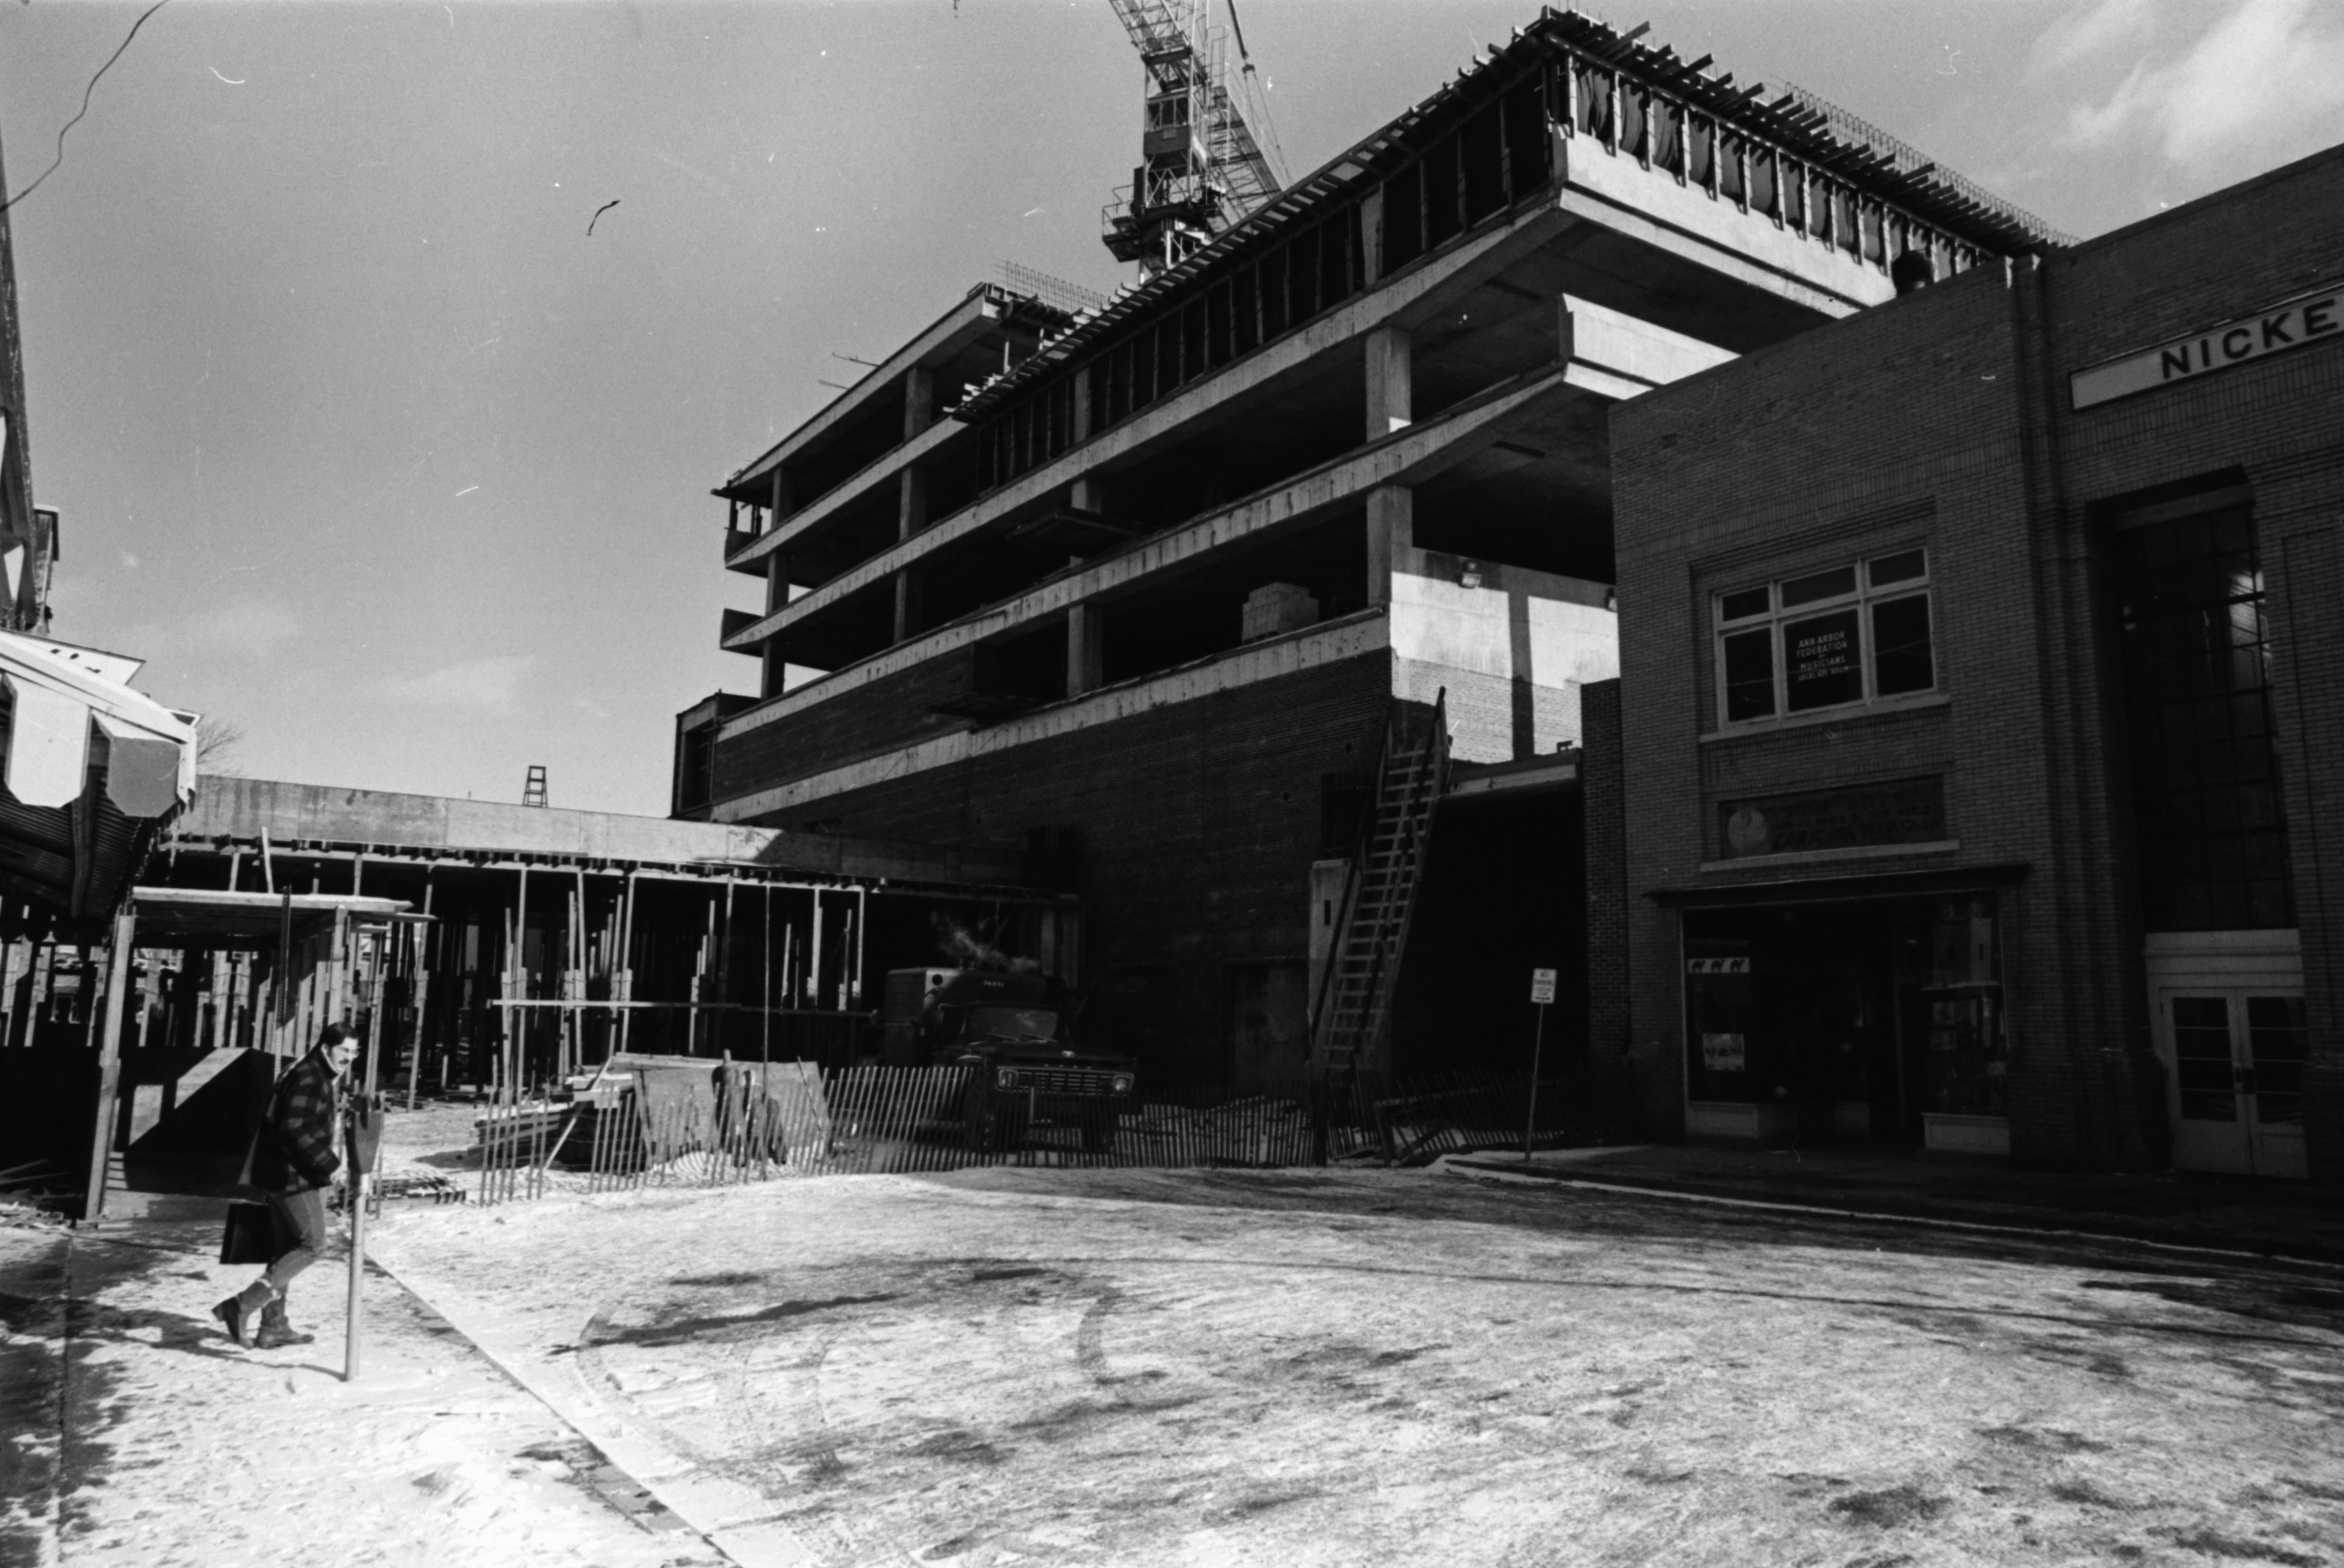 Construction of carport over Maynard Street, February 1969 image